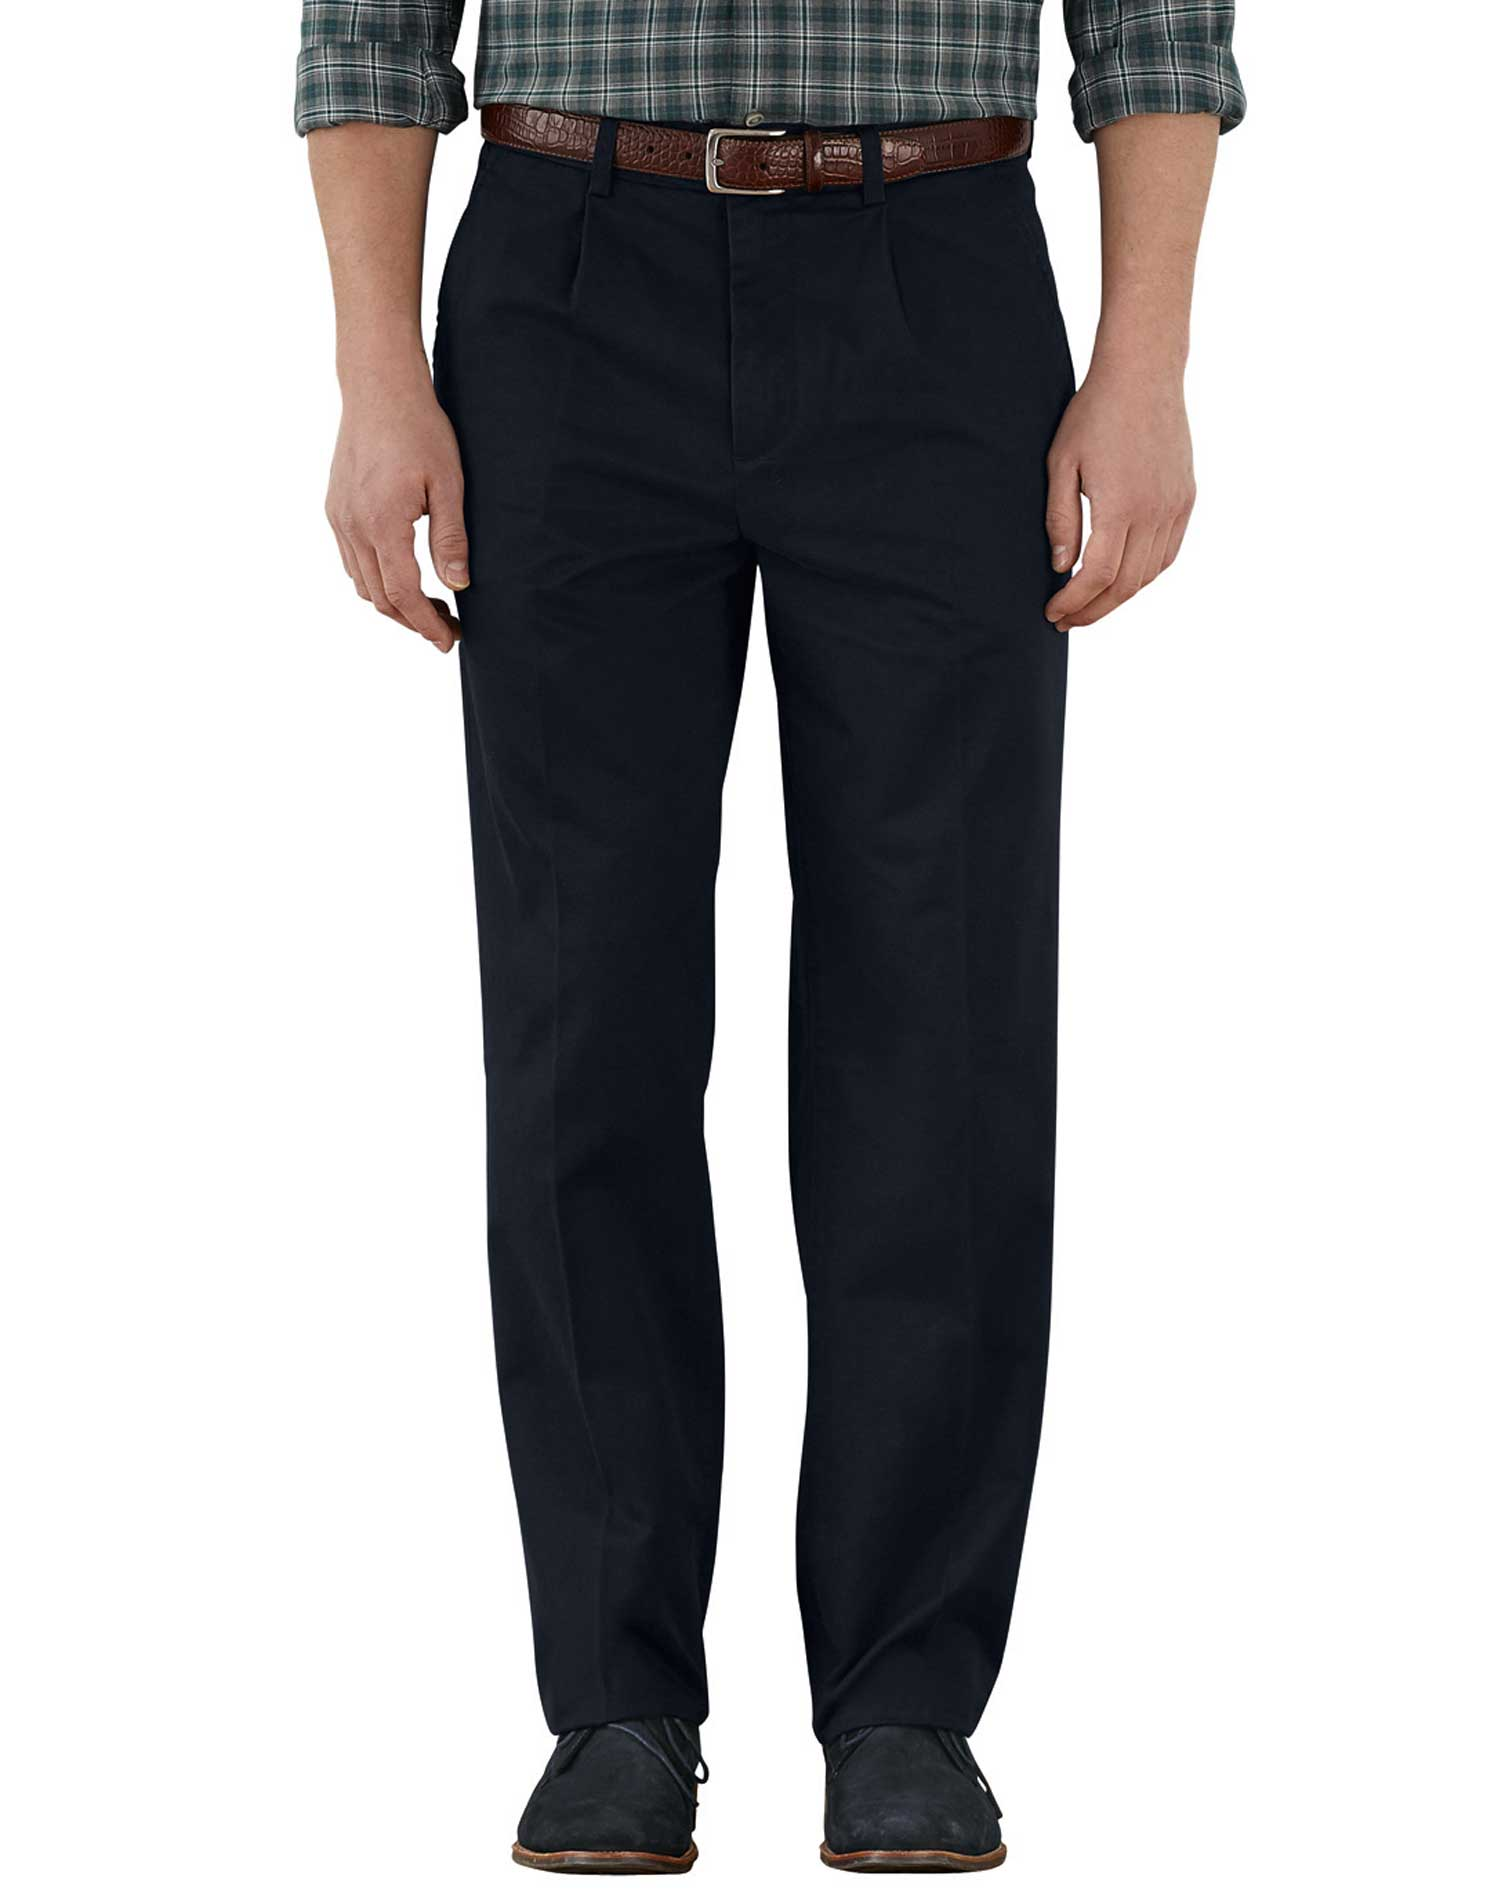 Navy Classic Fit Single Pleat Weekend Cotton Chino Trousers Size W32 L38 by Charles Tyrwhitt